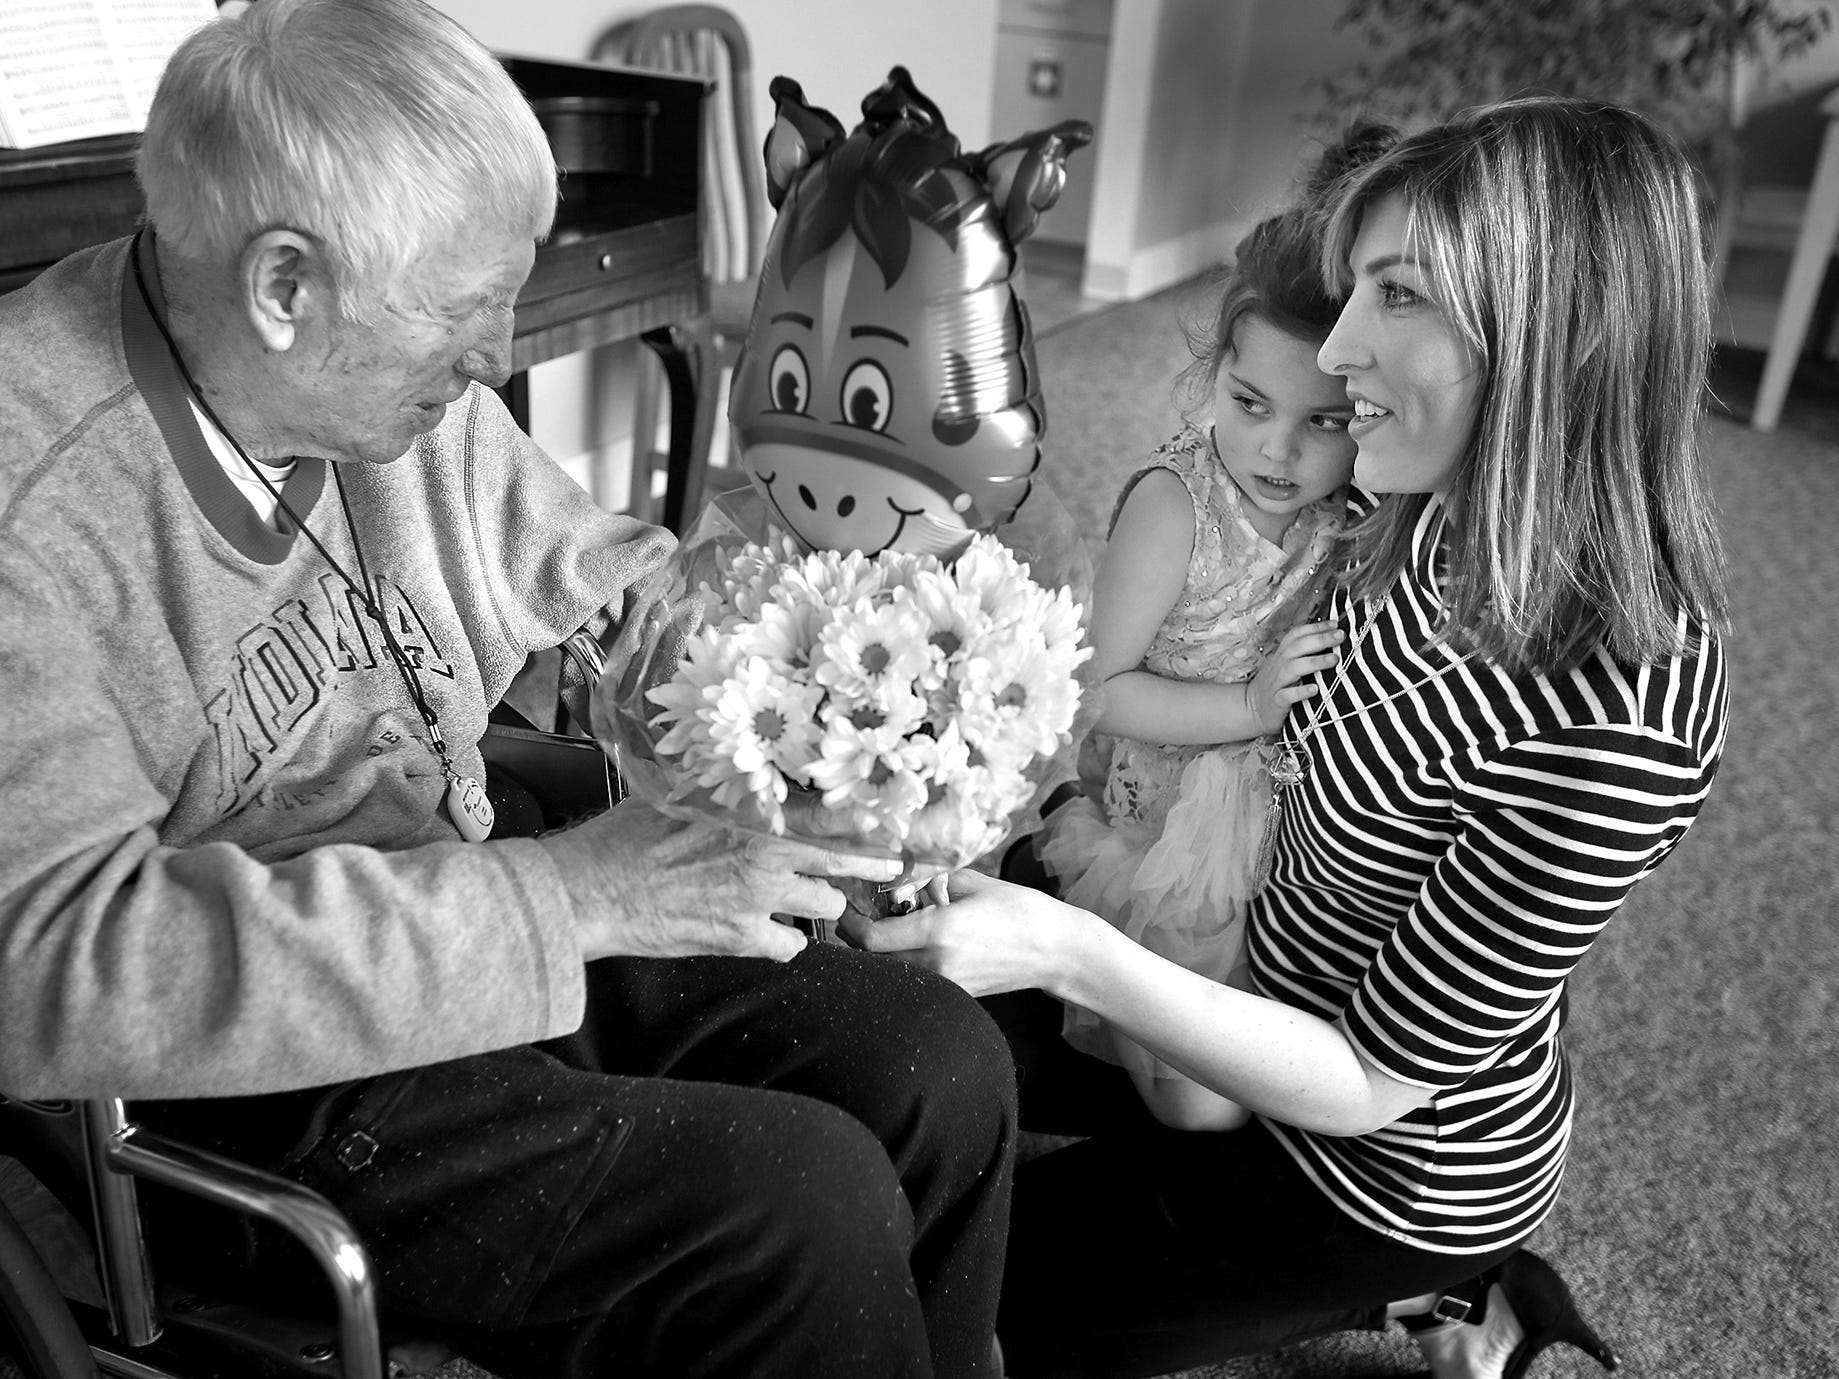 Dewey Logeland, left, meets Julia Gonzalez as she clings to her mother, Madison Gonzalez, at the Abbie Hunt Bryce Home, Friday, April 27, 2018.  The home offers hospice for the dying poor. Julia, whose mother works often at the home, shares a love of horses with Logeland.  The Gonzalez family visited Logeland, and shared chocolate and flowers.